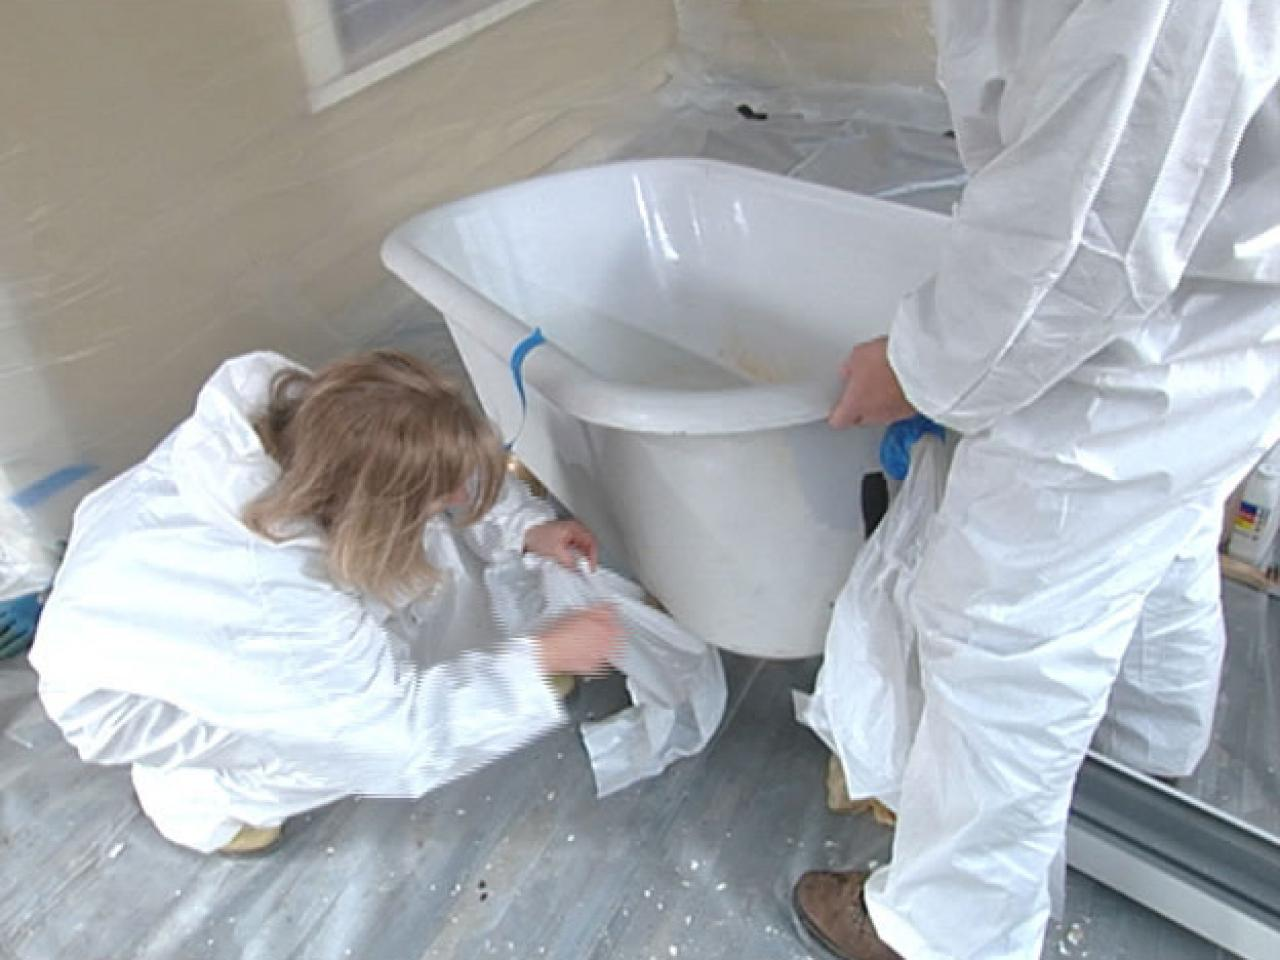 Clawfoot Bathtub Reglazing-San Diego Bathtub Reglazing & Tub Resurfacing Pros